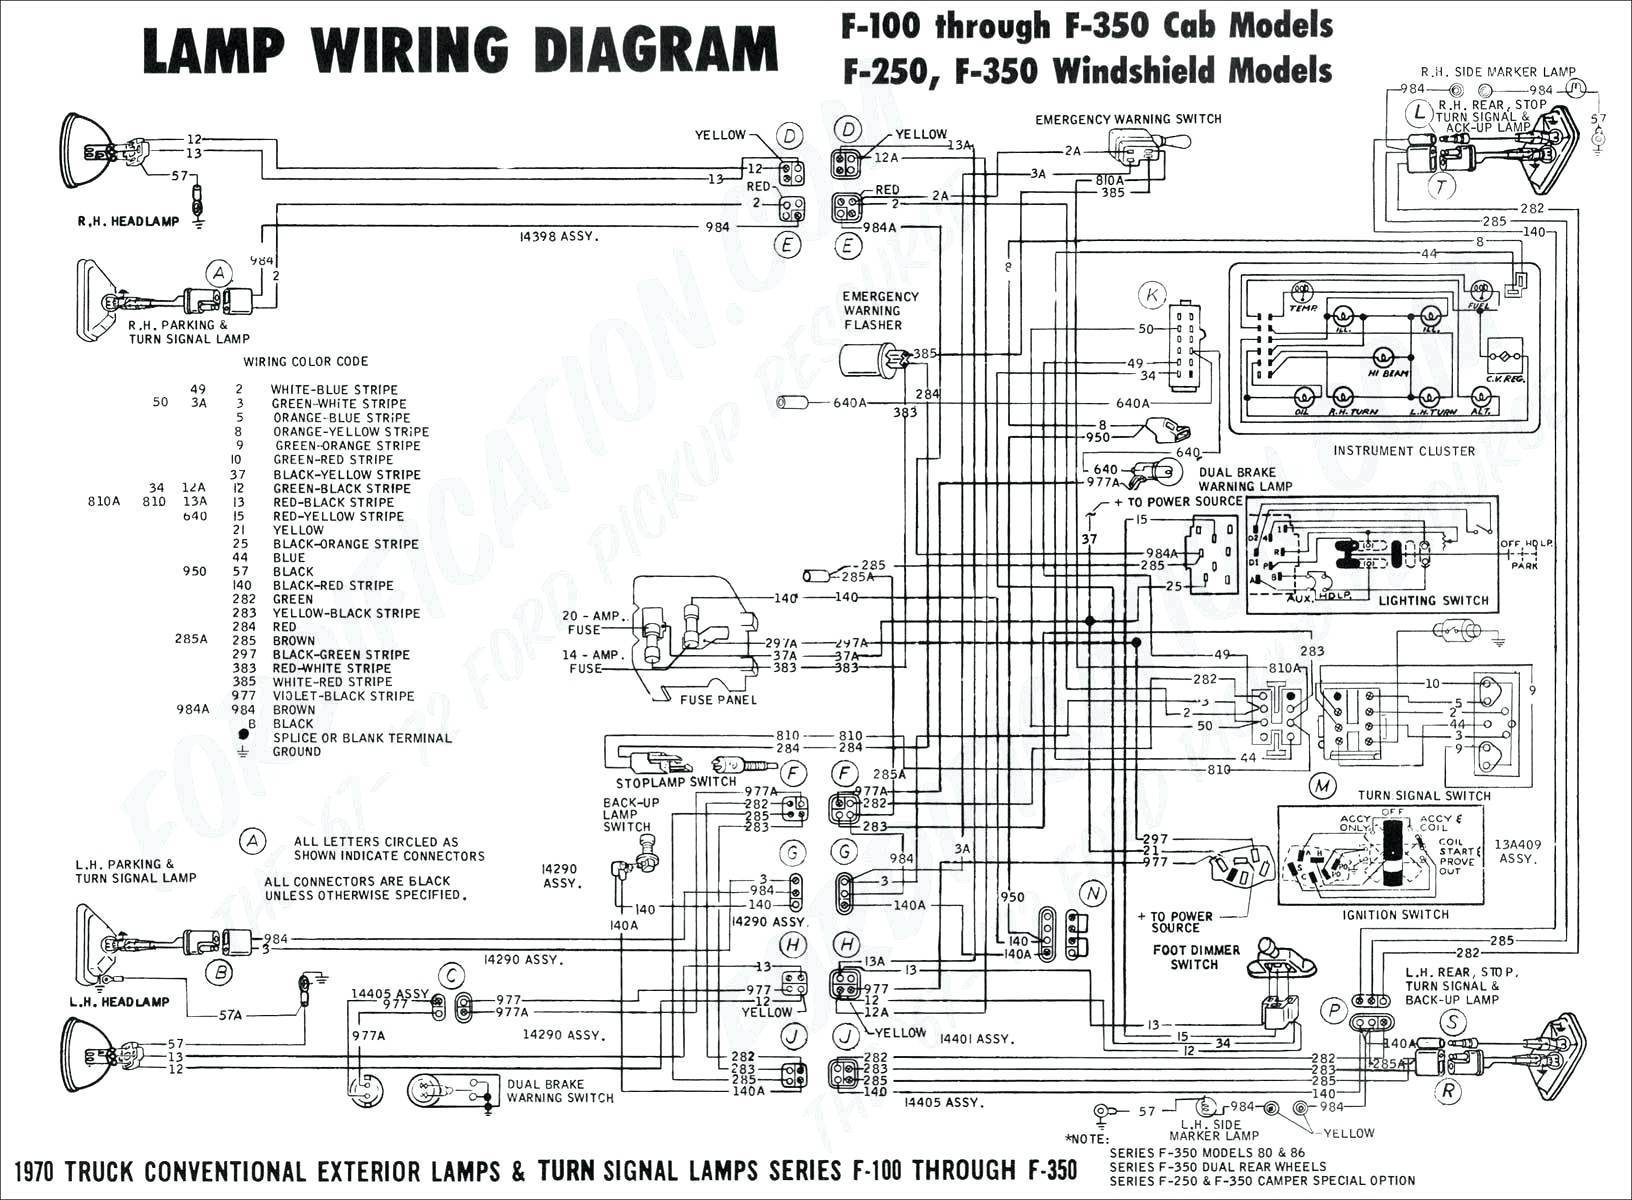 hight resolution of 5 9 cummins engine diagram 2 6 9 glow plug relay wiring diagram best chevy 6 5 diesel engine